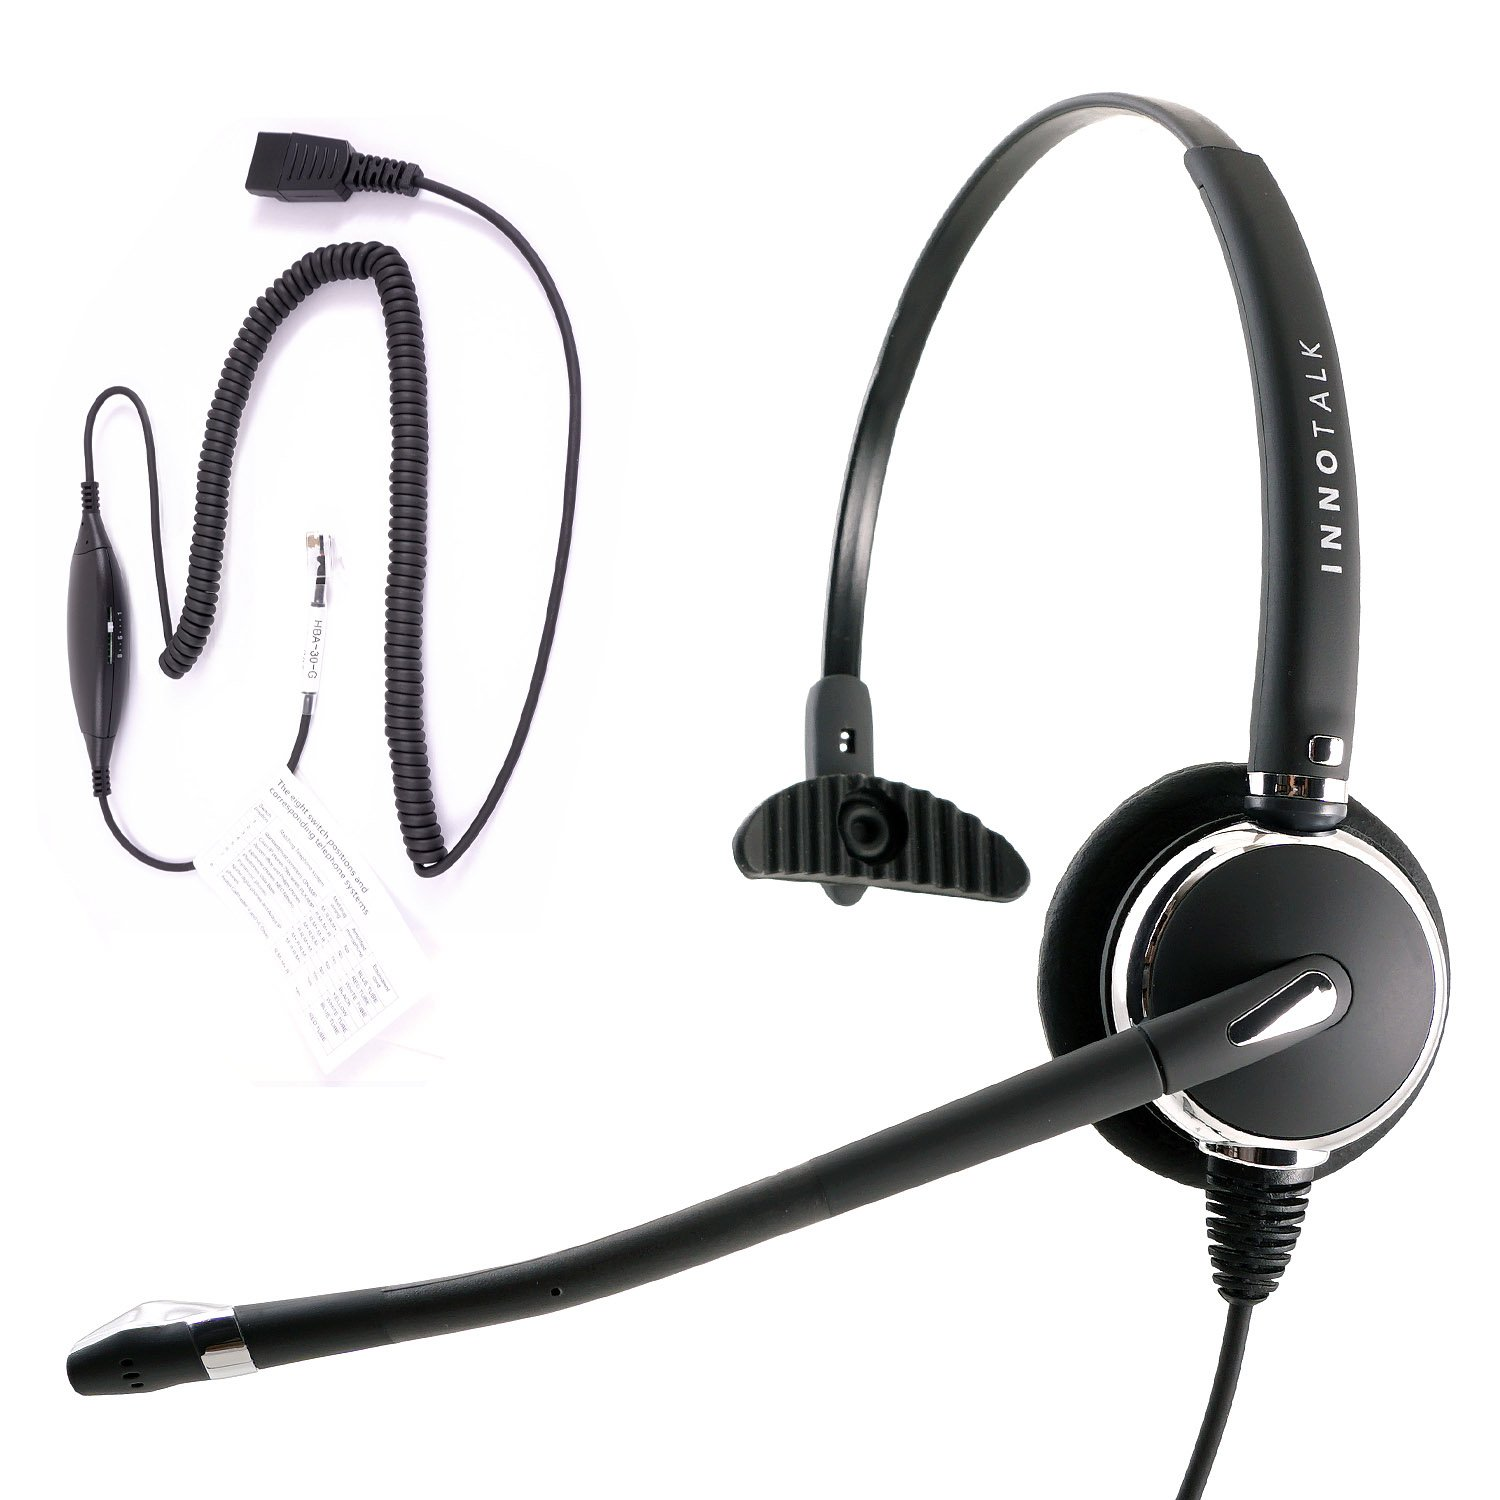 RJ9 Headset - Luxury Professional Monaural Headset + Virtual RJ9 cord for ANY phone's modular jack, Compare GN1200 Smart cord by InnoTalk